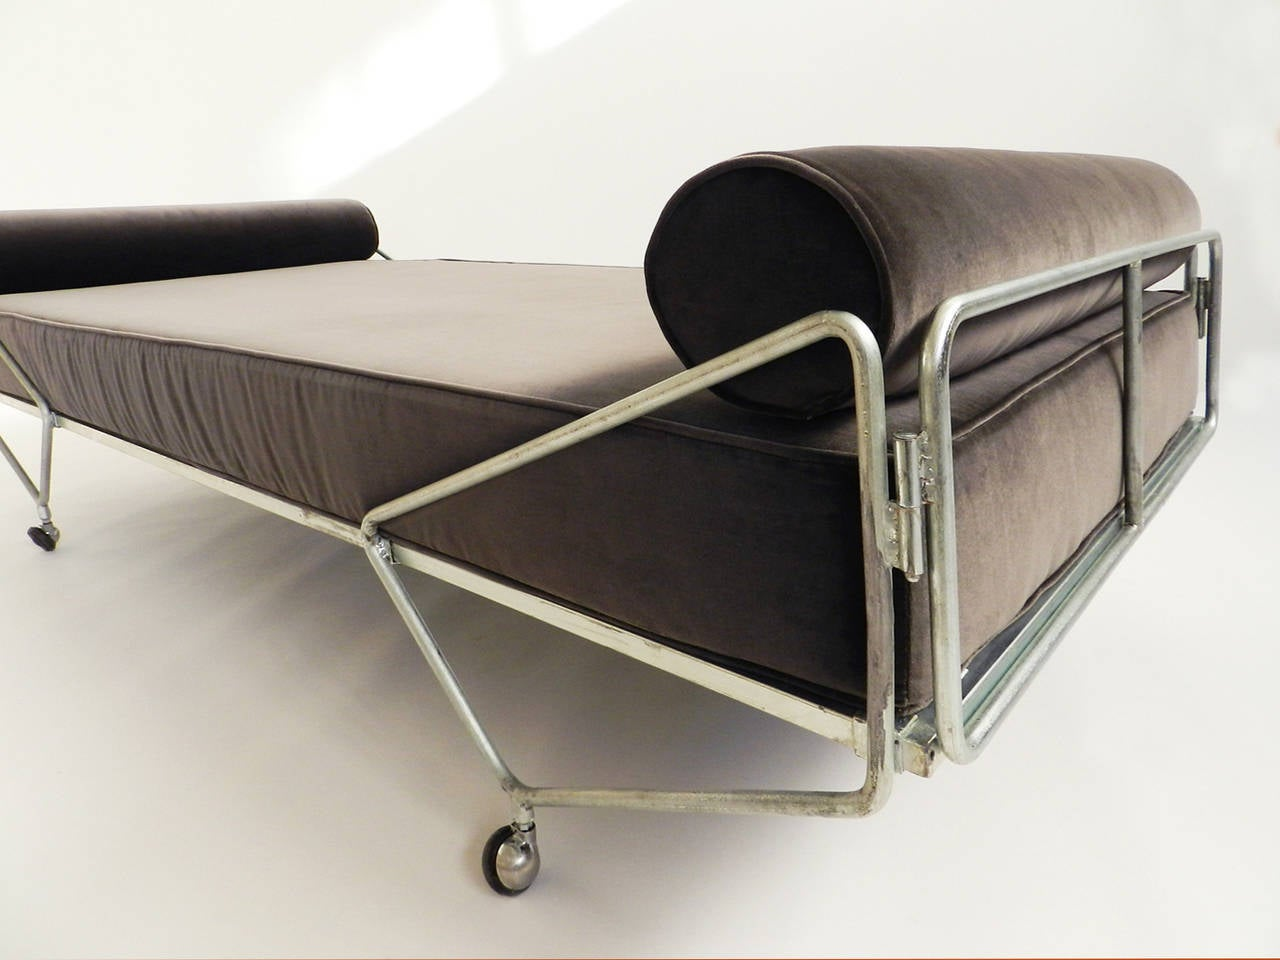 Gio Ponti Daybed from the Apta Series 4